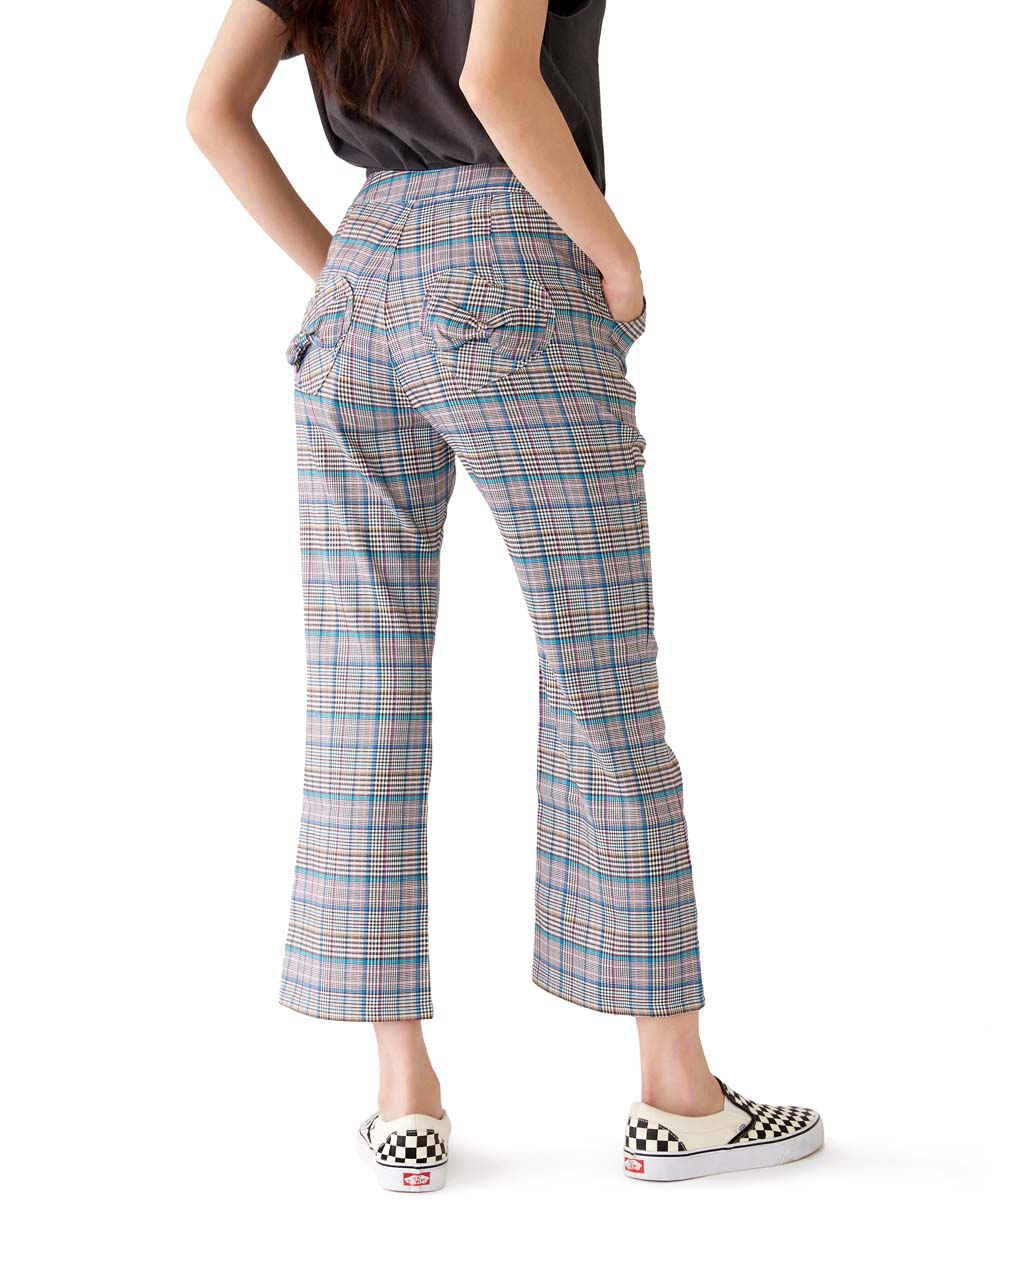 9ec690cdb8 Check Kick Flare Pants by lazy oaf - pants - ban.do